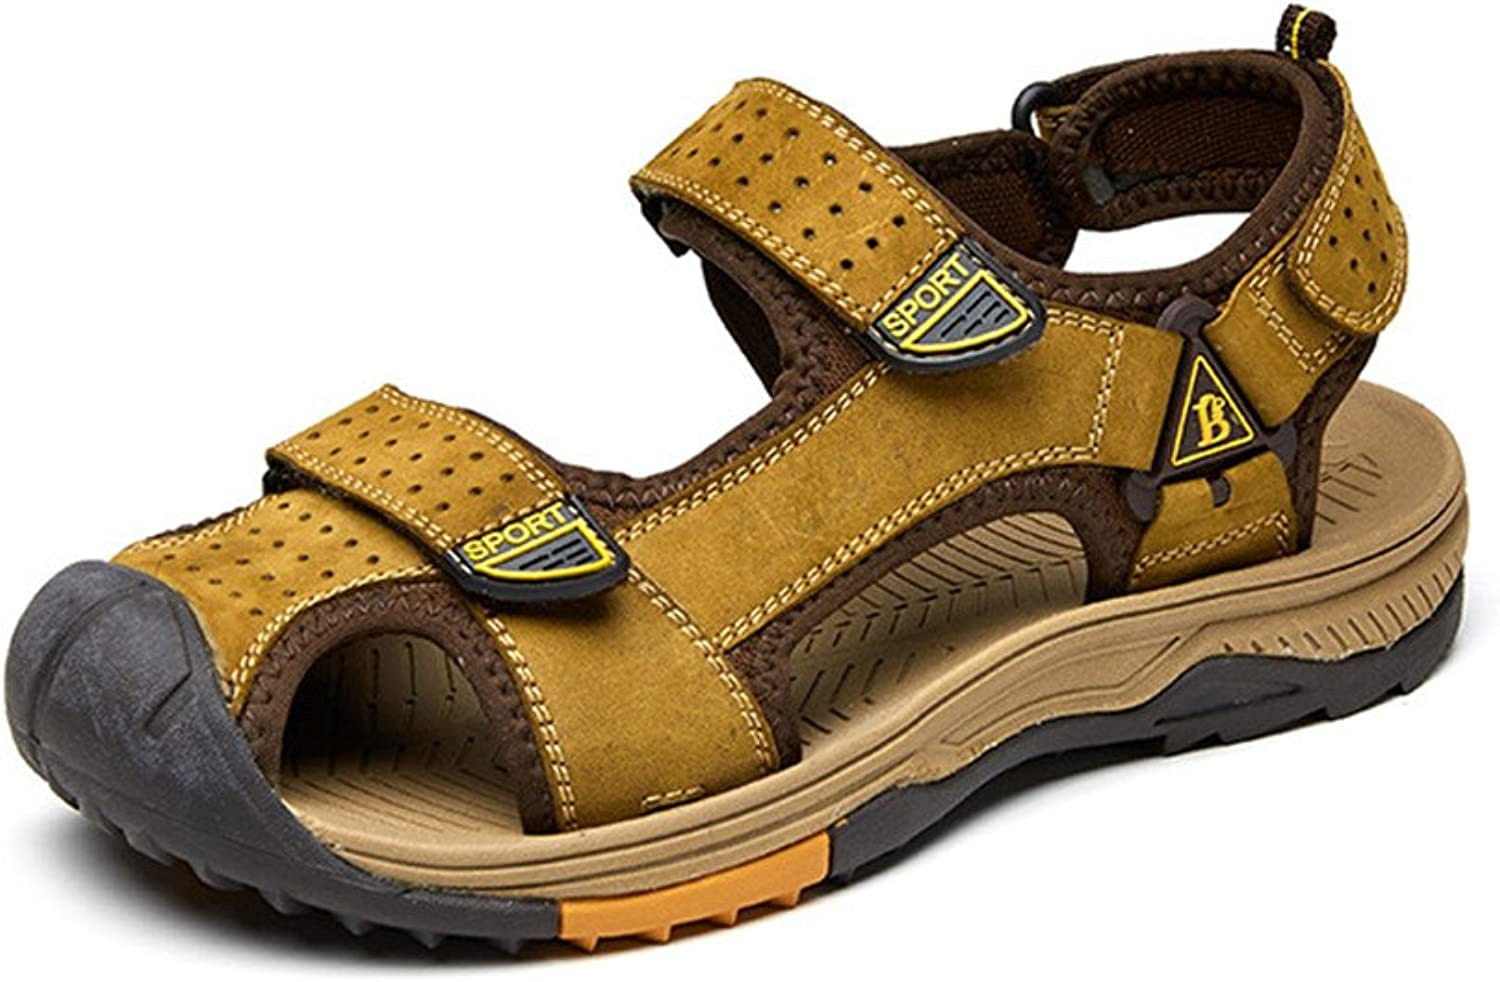 Men's On Foot Sneaker Leather Sandals Summer Outdoor Fisherman's shoes Closed Walk